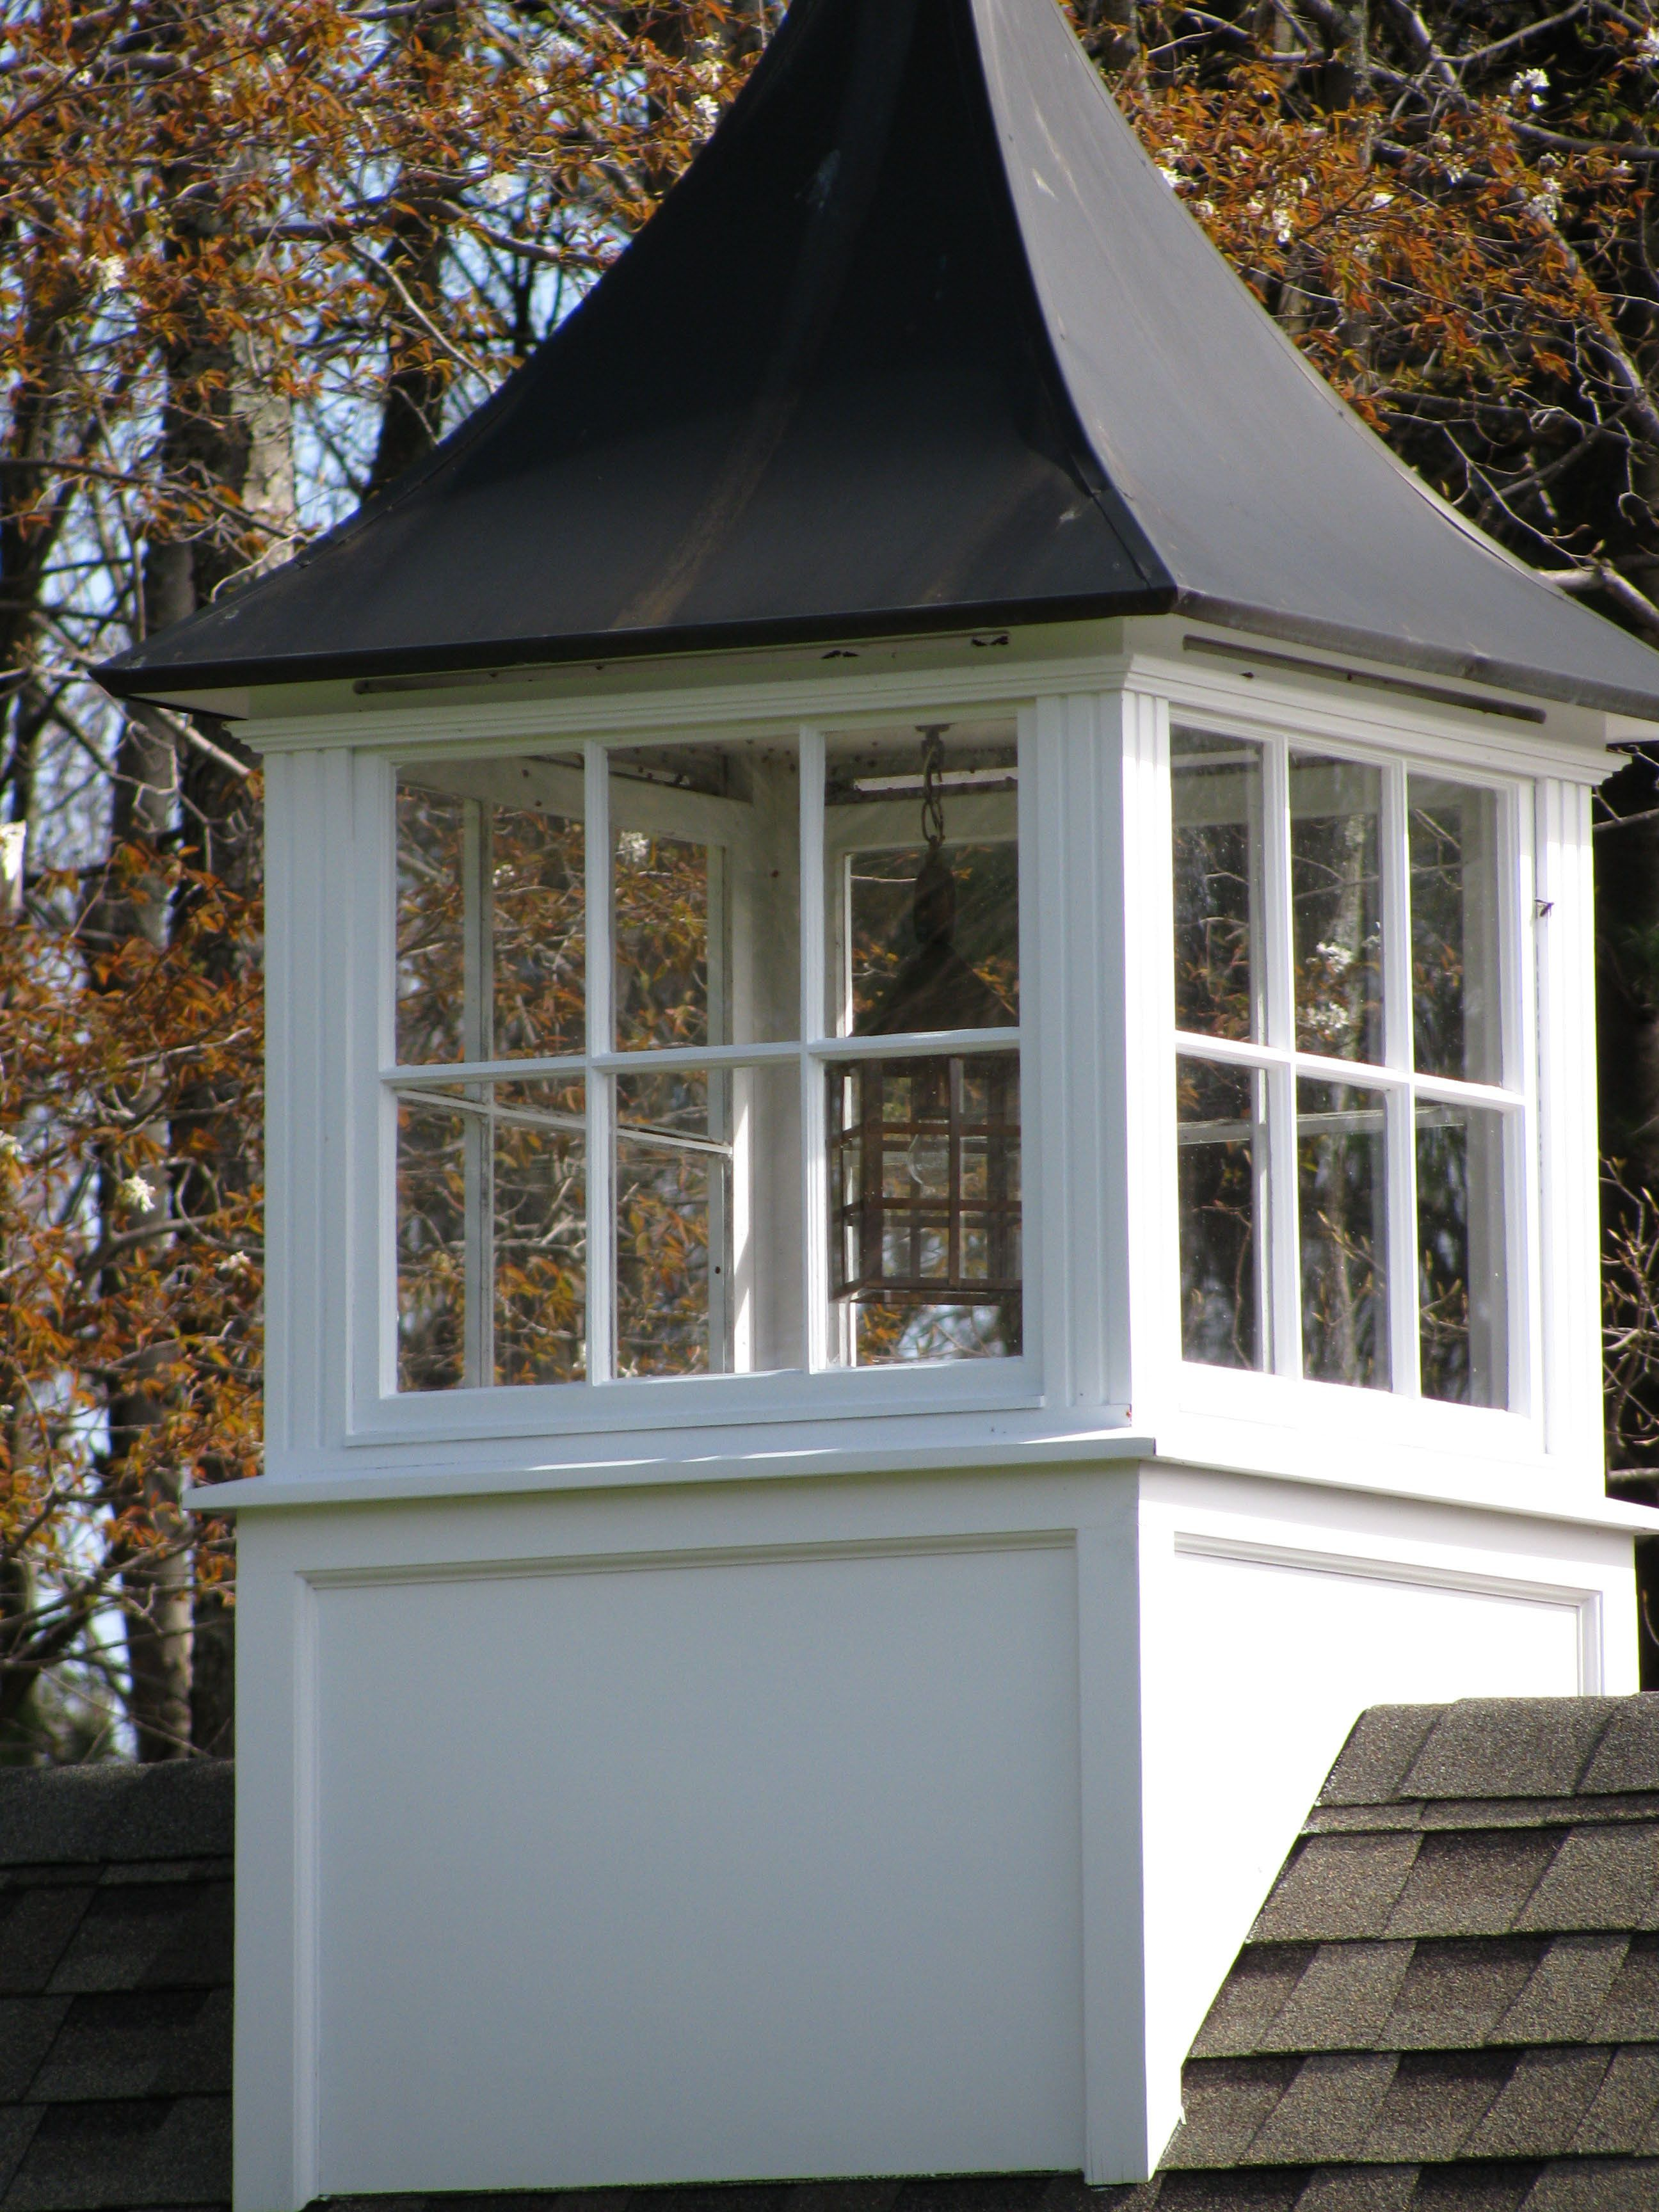 Light Through The Cupola Window Barn Cupola House Exterior Architecture Details